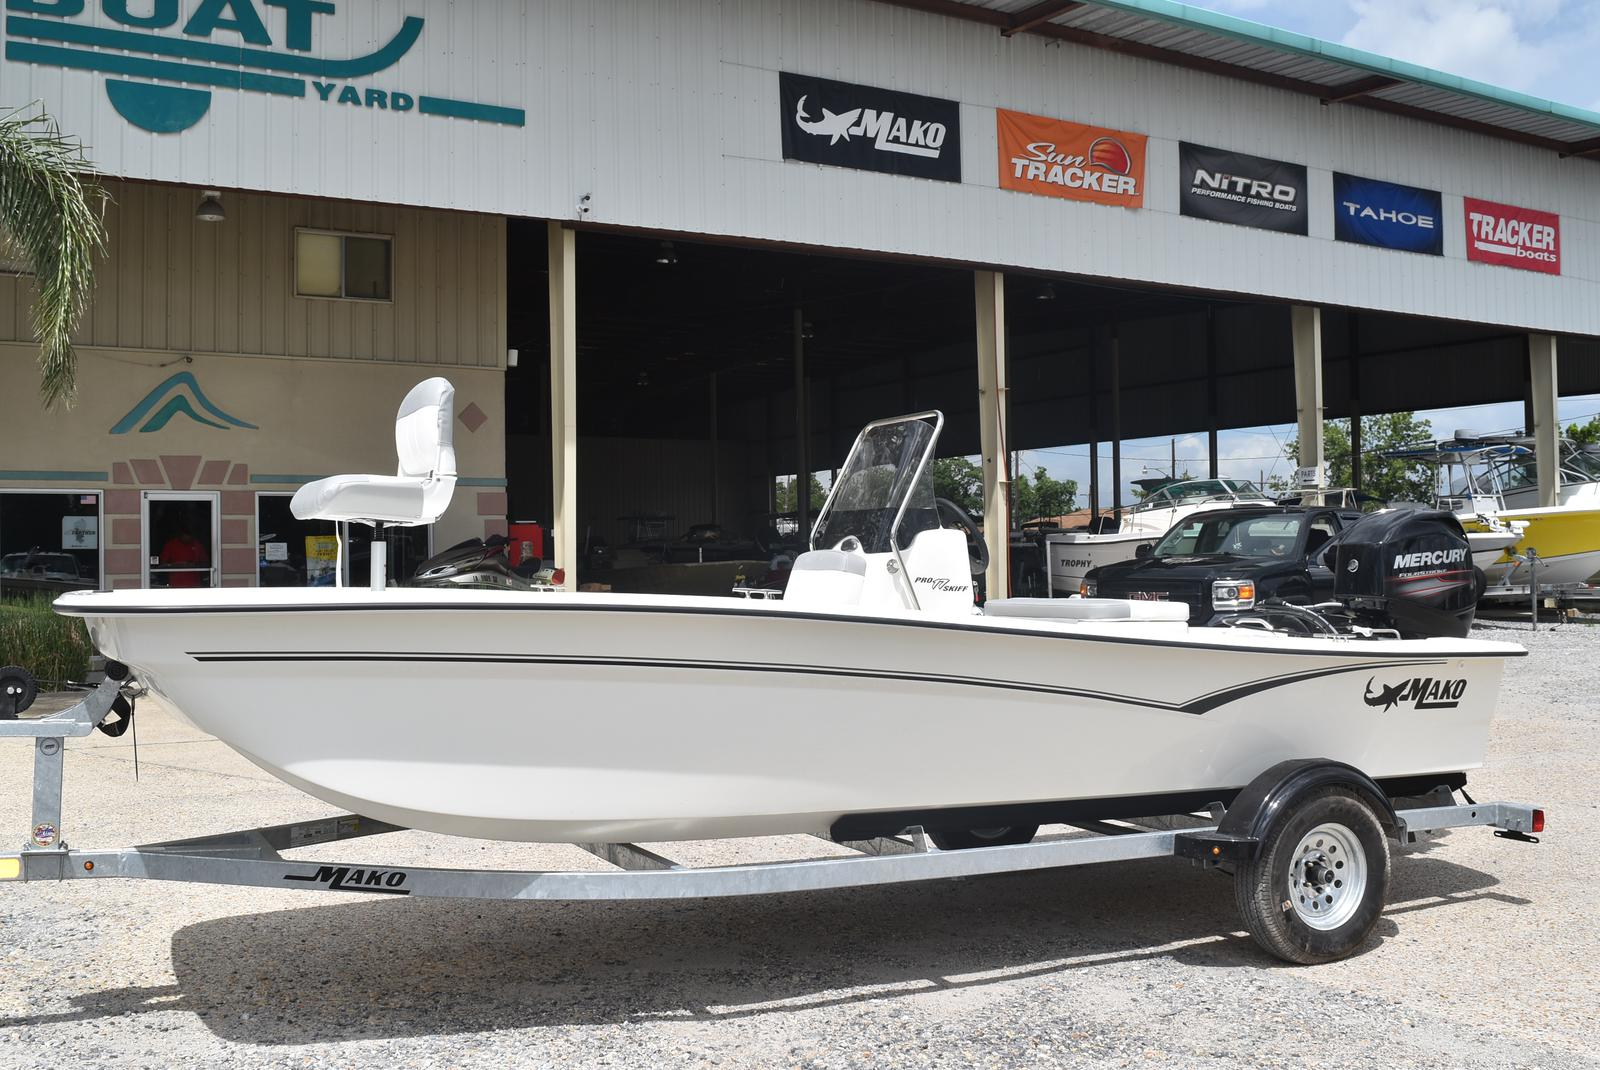 2020 Mako boat for sale, model of the boat is Pro Skiff 17, 75 ELPT & Image # 153 of 702